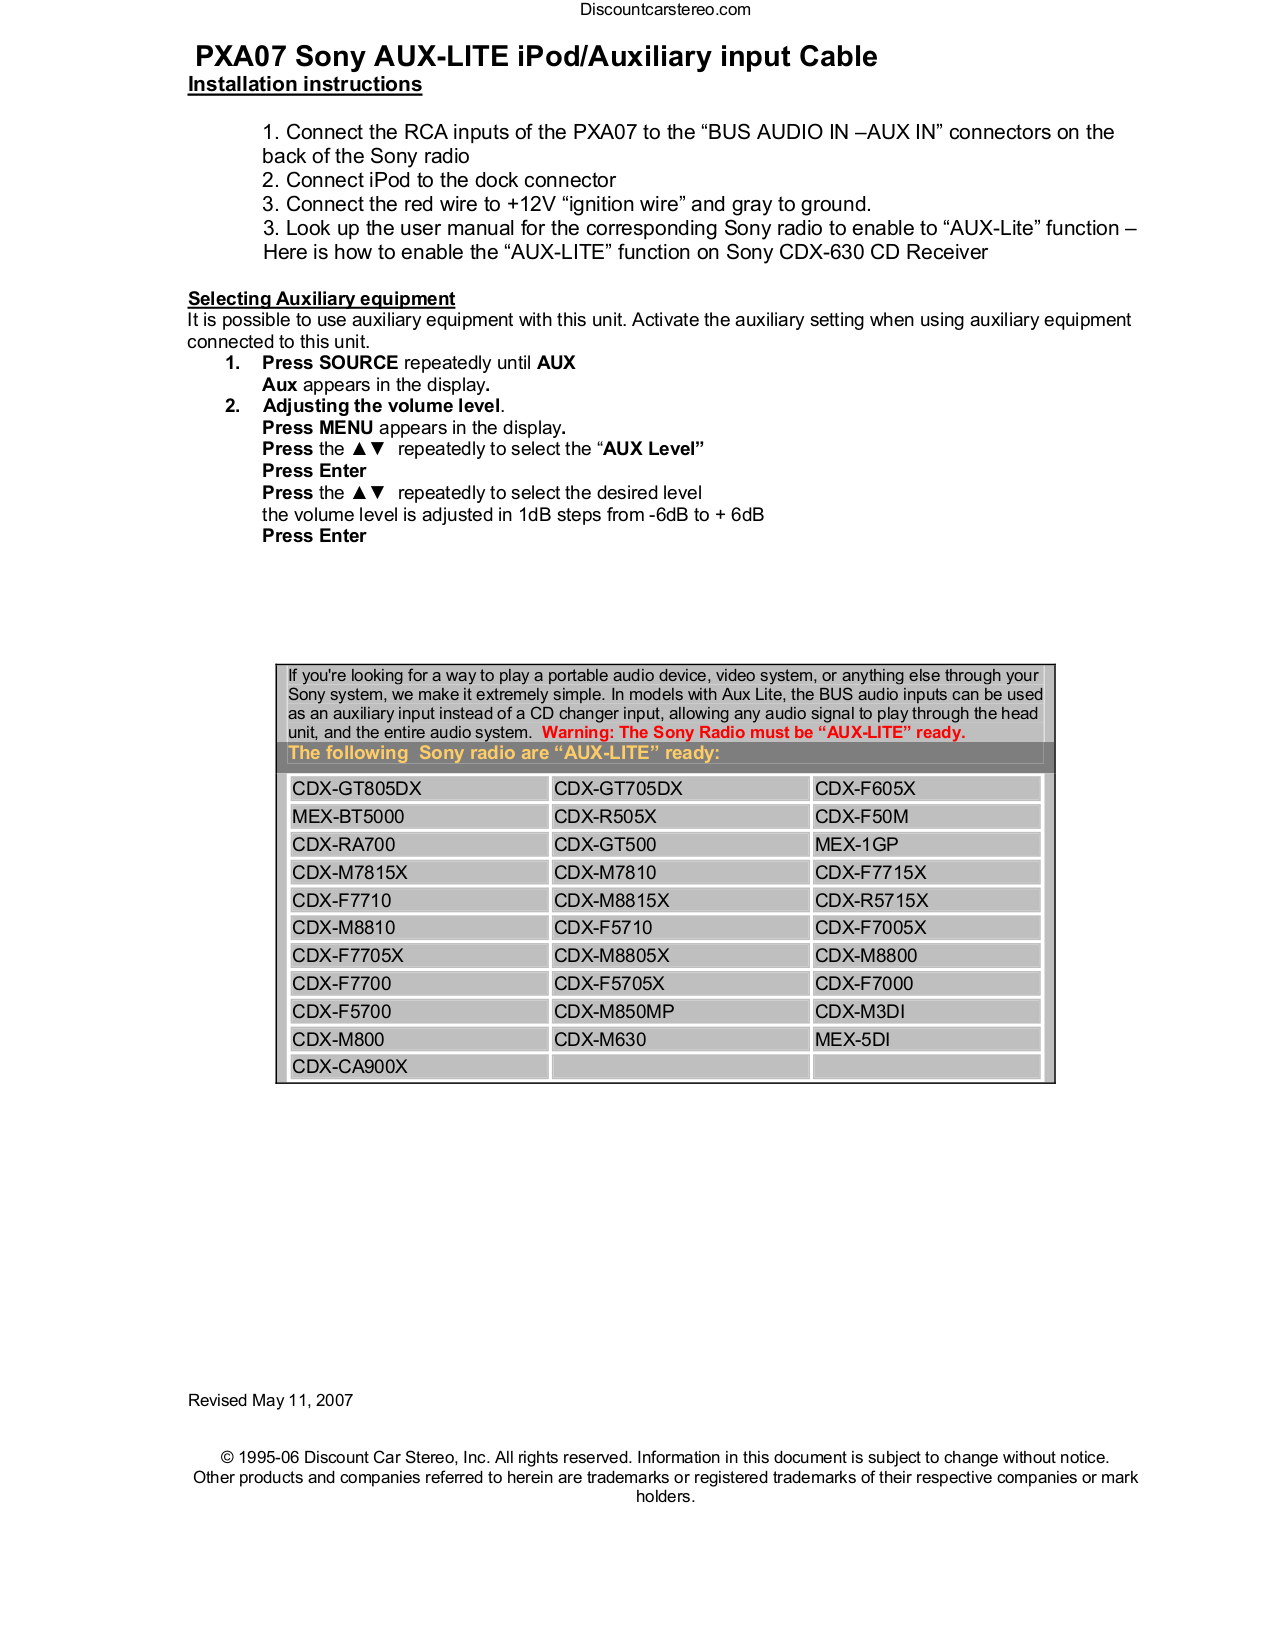 Pdf Manual For Sony Car Receiver Cdx F5700 Rh Umlib Com On Sony Cdx F5000  For Sony Car Receiver Cdx F5700 Pdf Page Preview At Sony Xplod Wiring  Harness ...